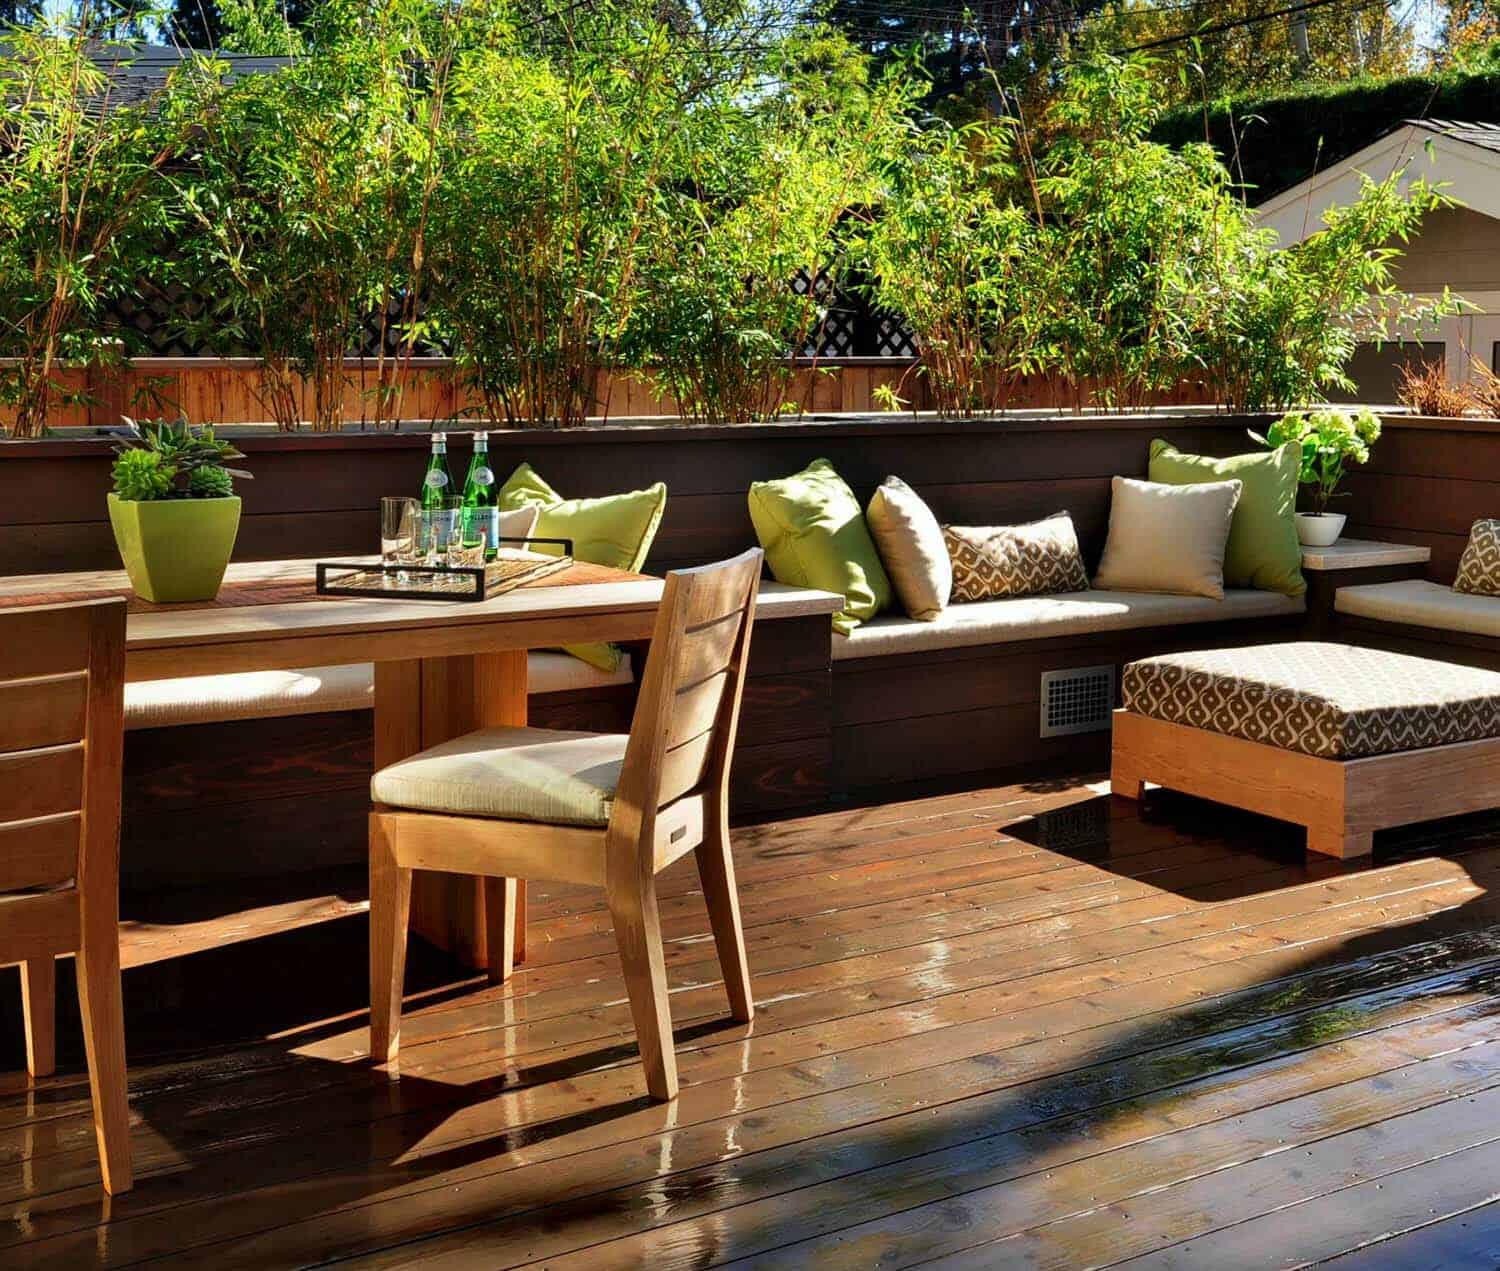 20 Brilliant and inspiring patio ideas for outdoor living and ...